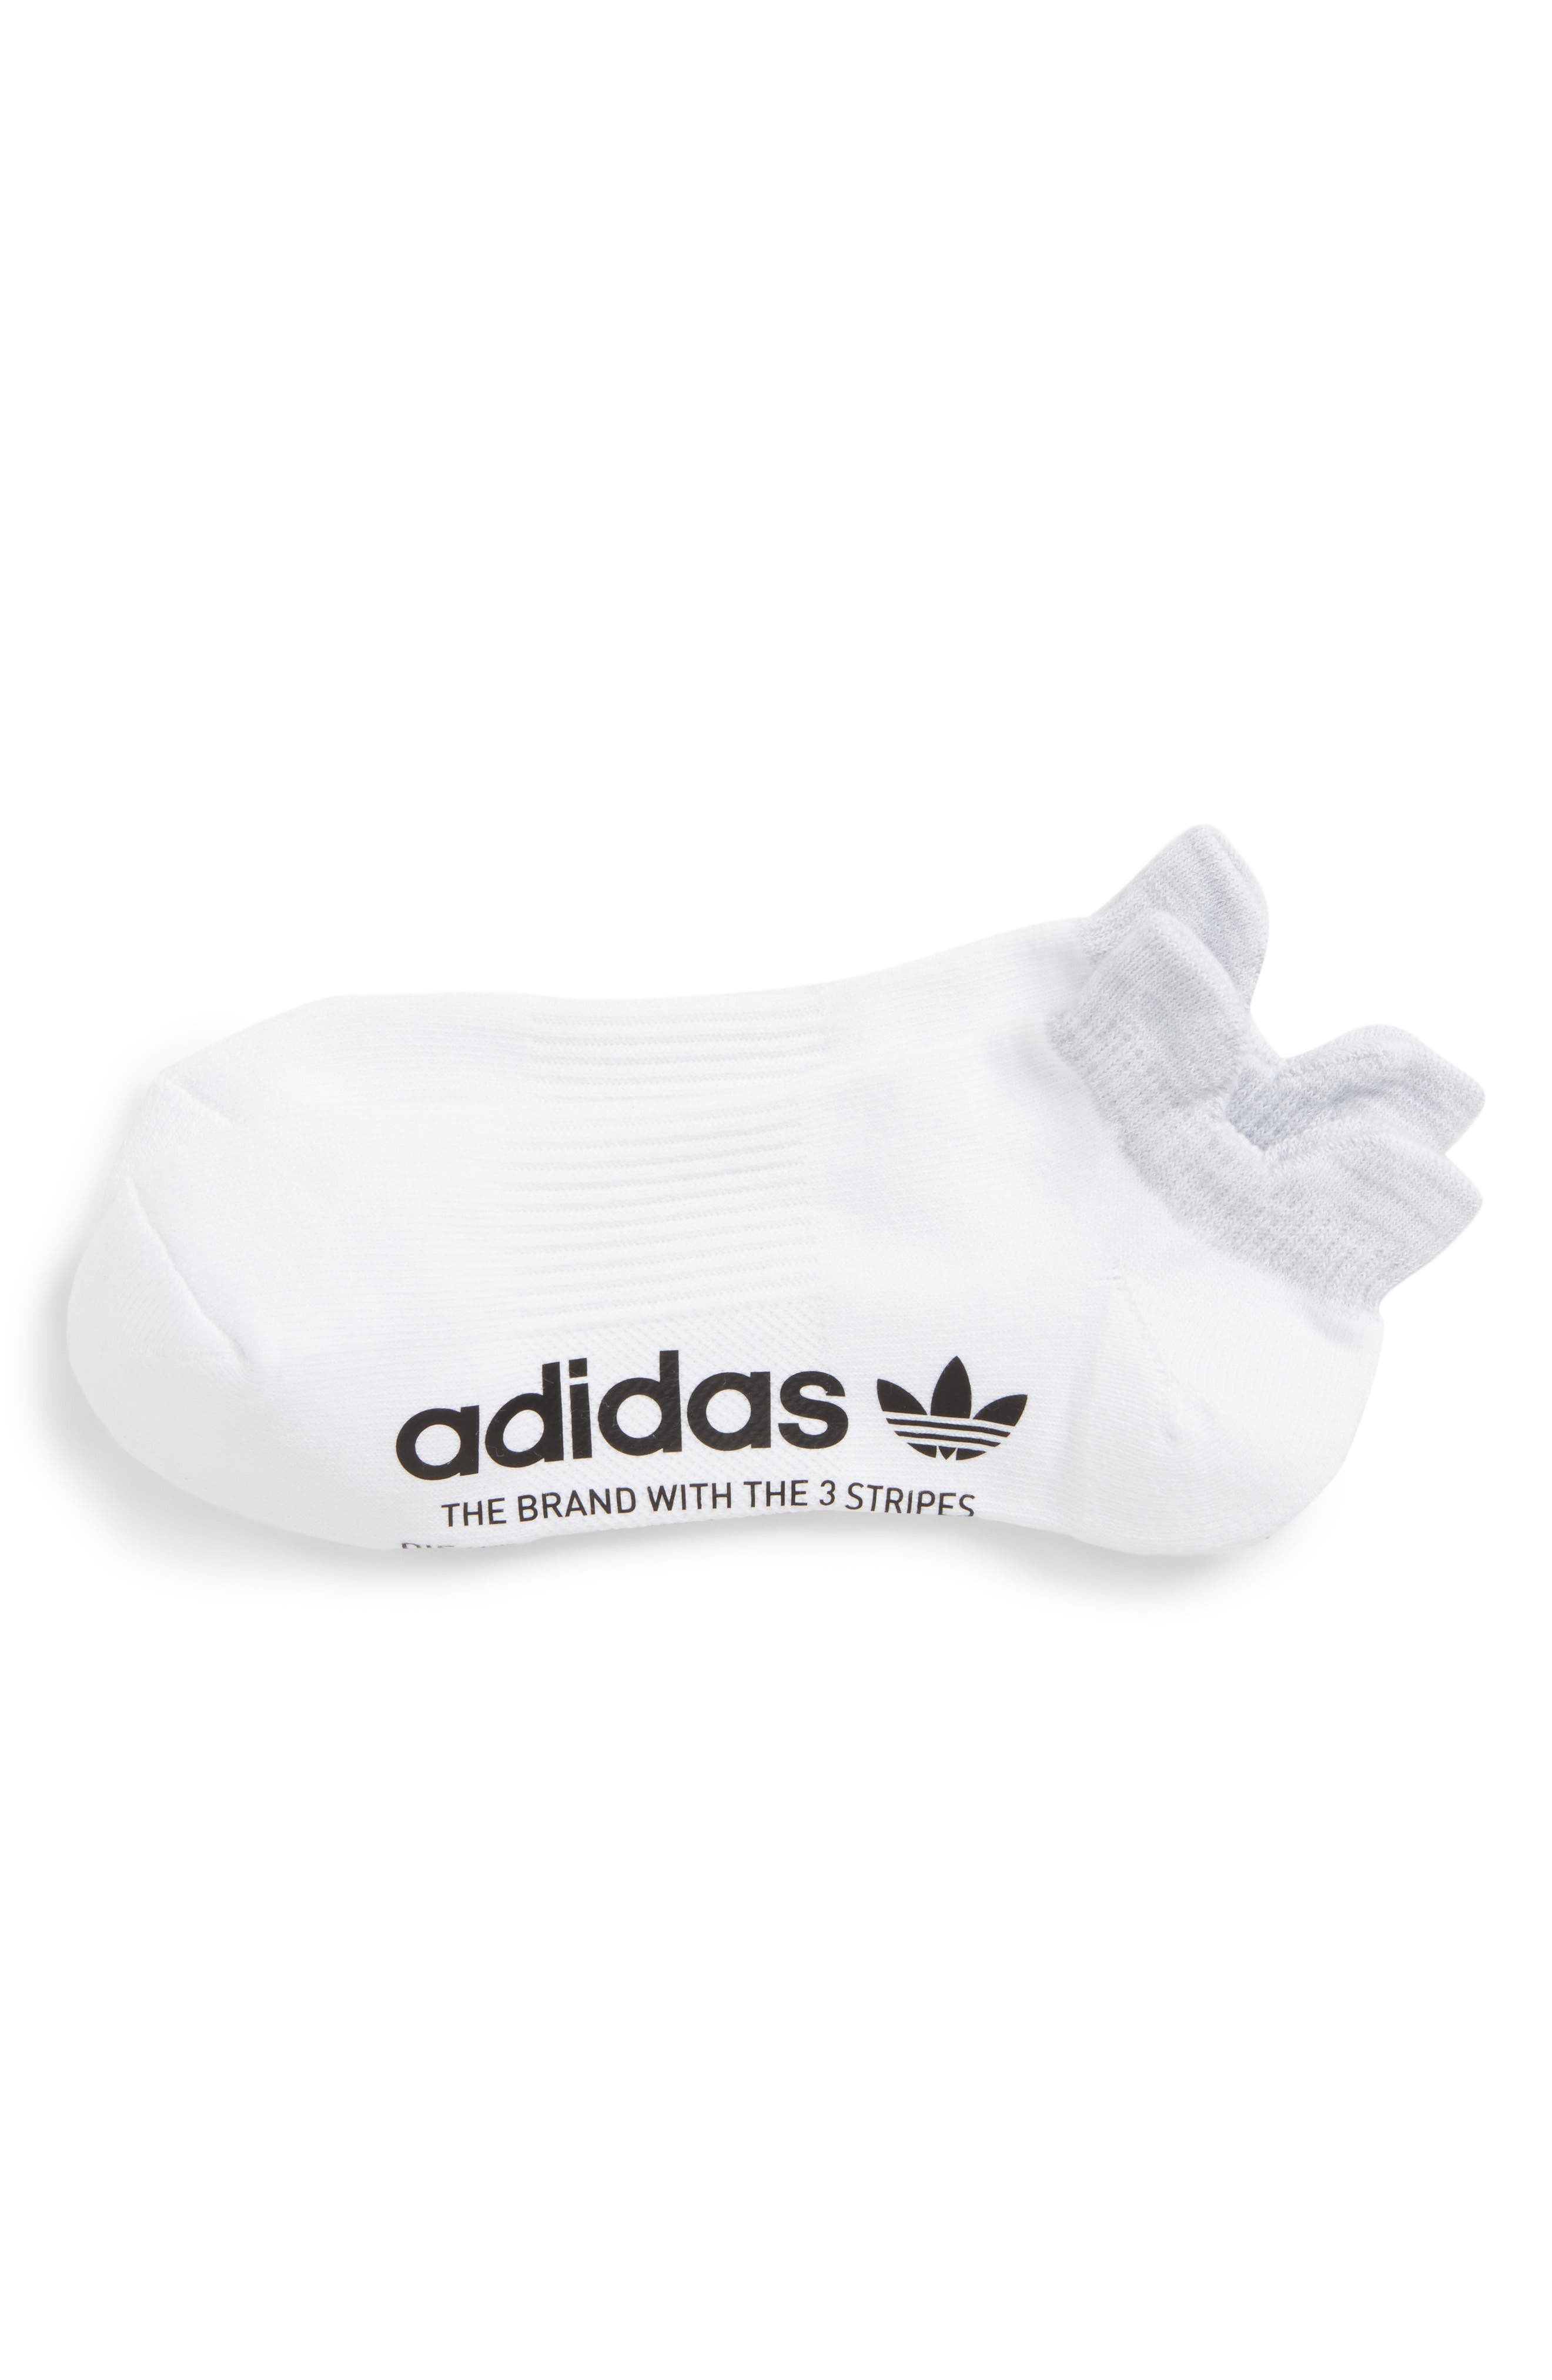 Running Socks,                         Main,                         color, White/ Clear Onyx Space Dye